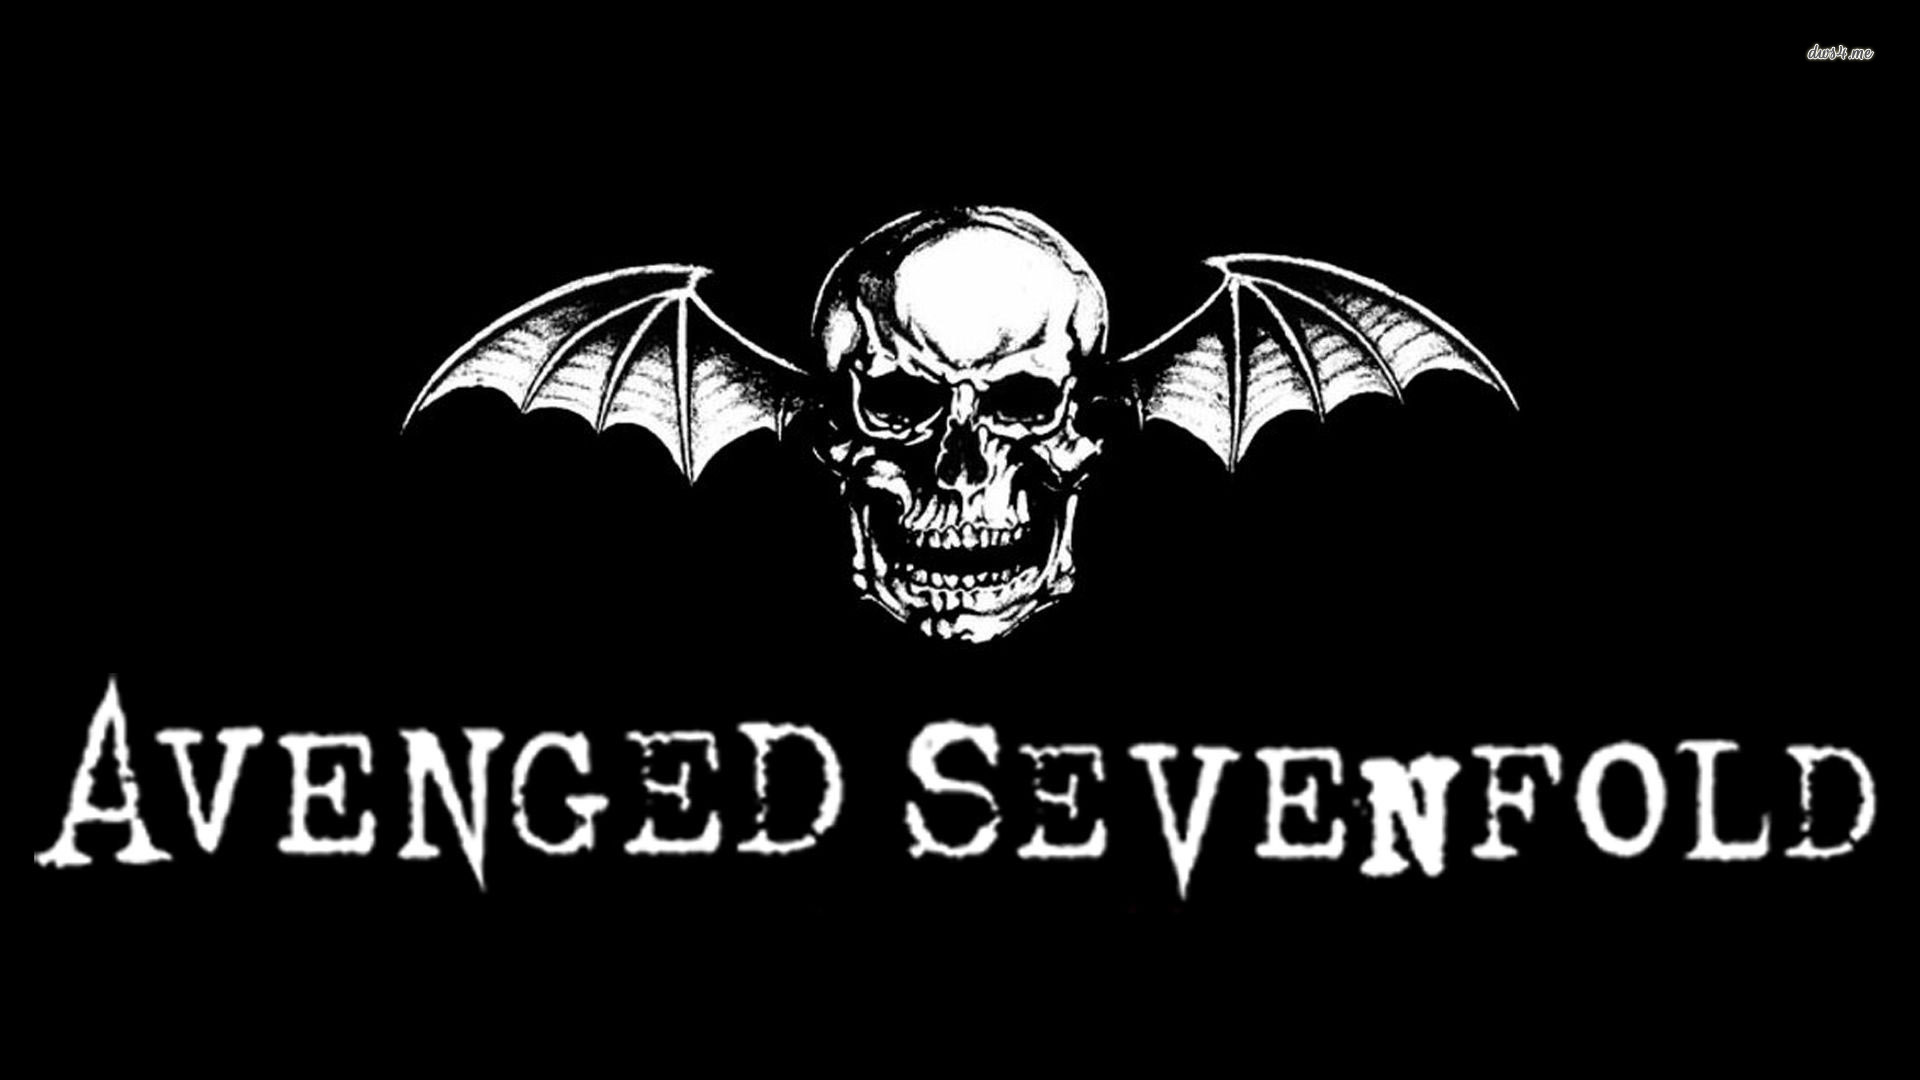 Handsome Avenged Sevenfold Hd Wallpaper-Handsome Avenged Sevenfold Hd Wallpaper-16